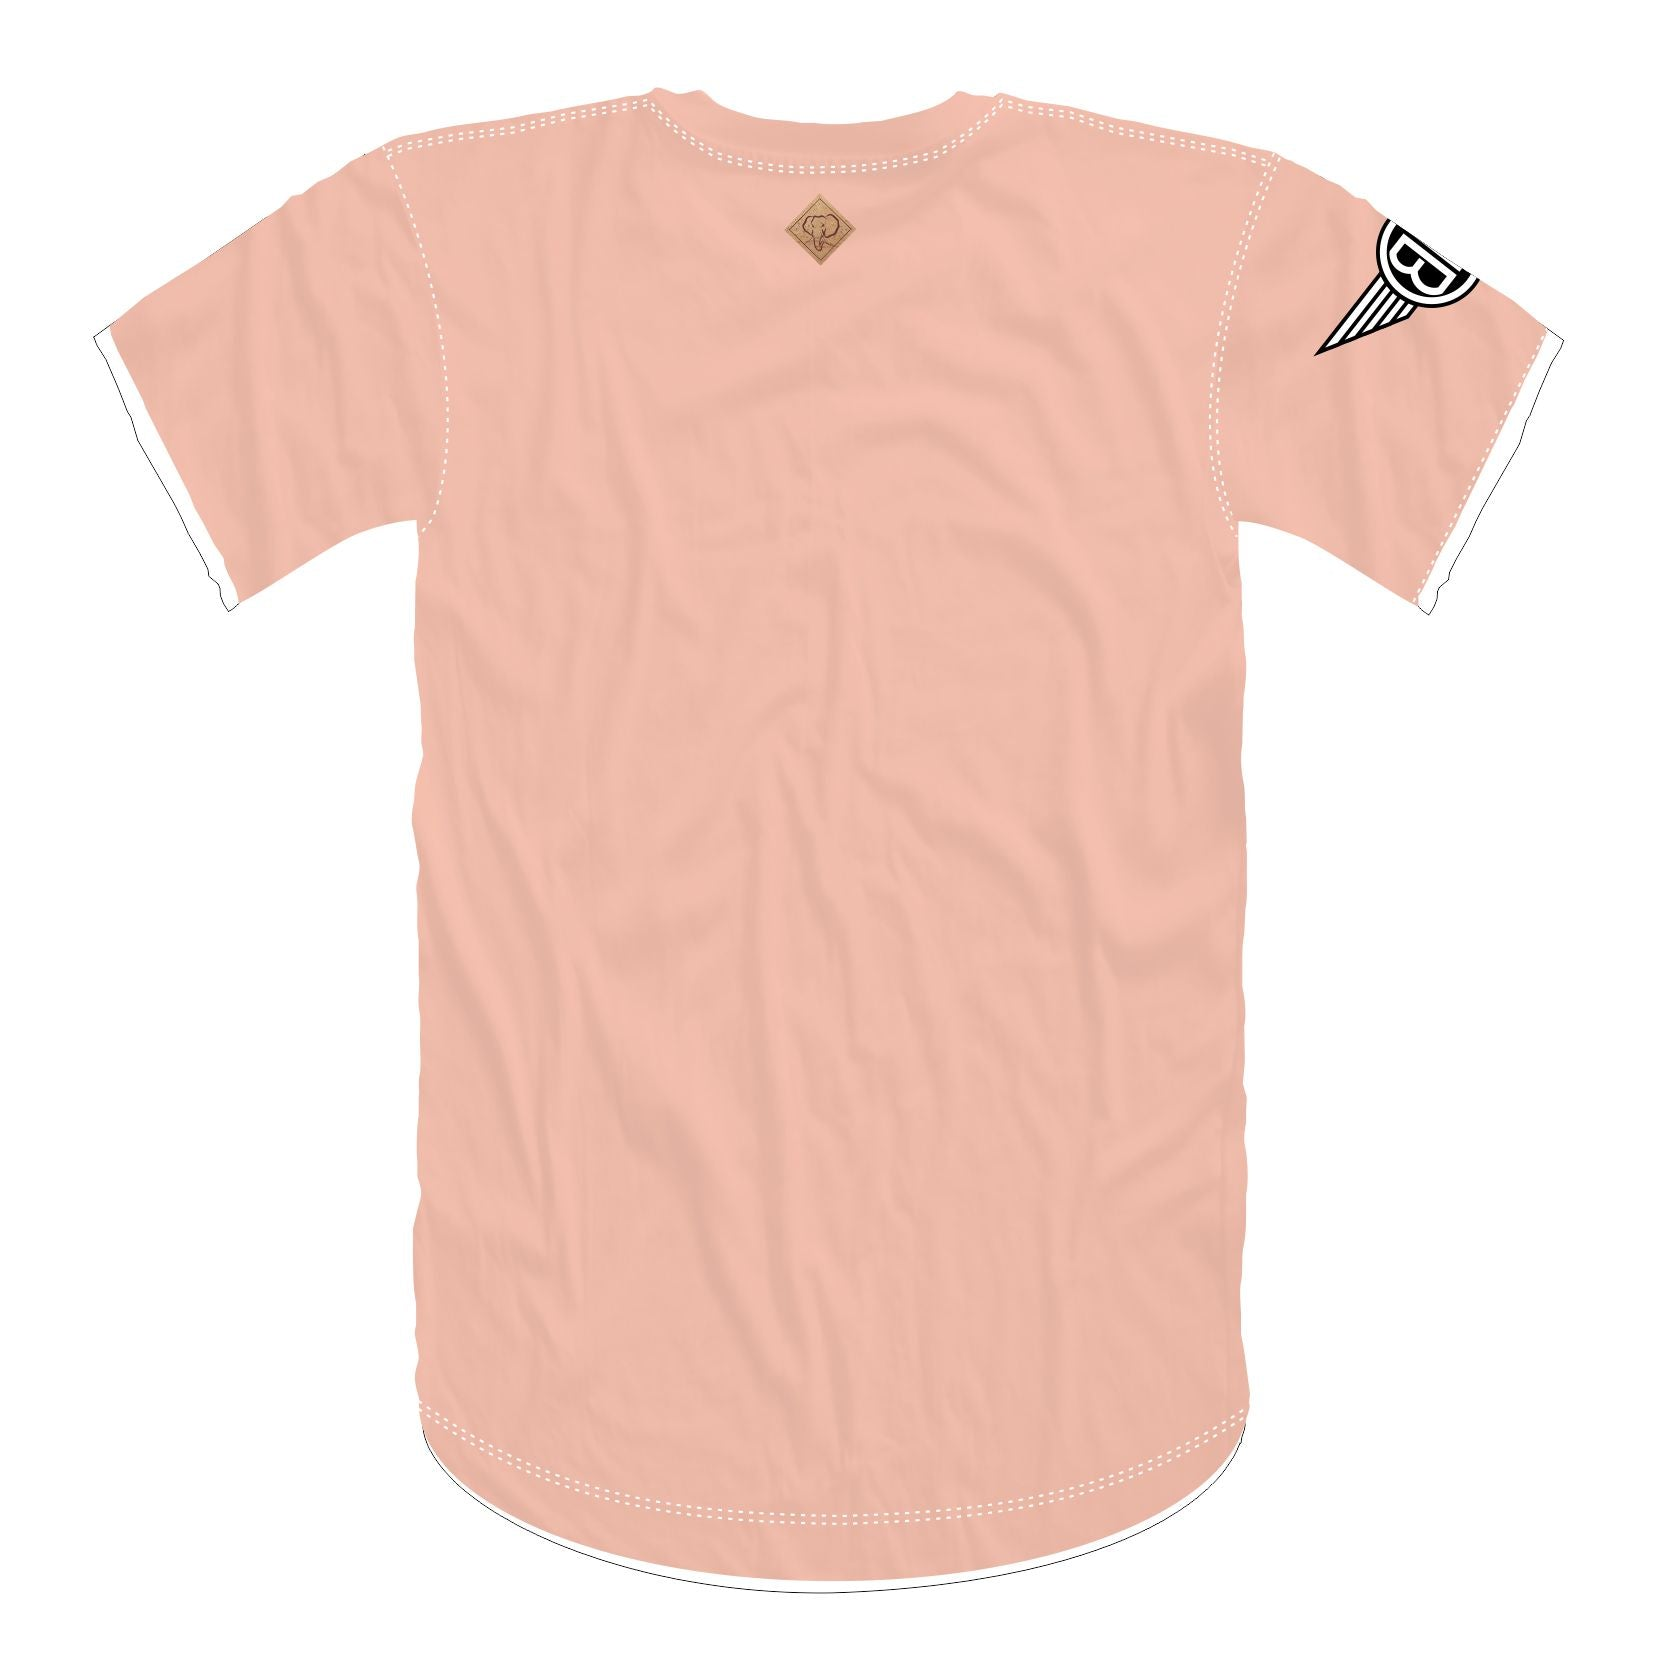 Oversized Elephant Head Tee in Peach with White/Black Embroidery